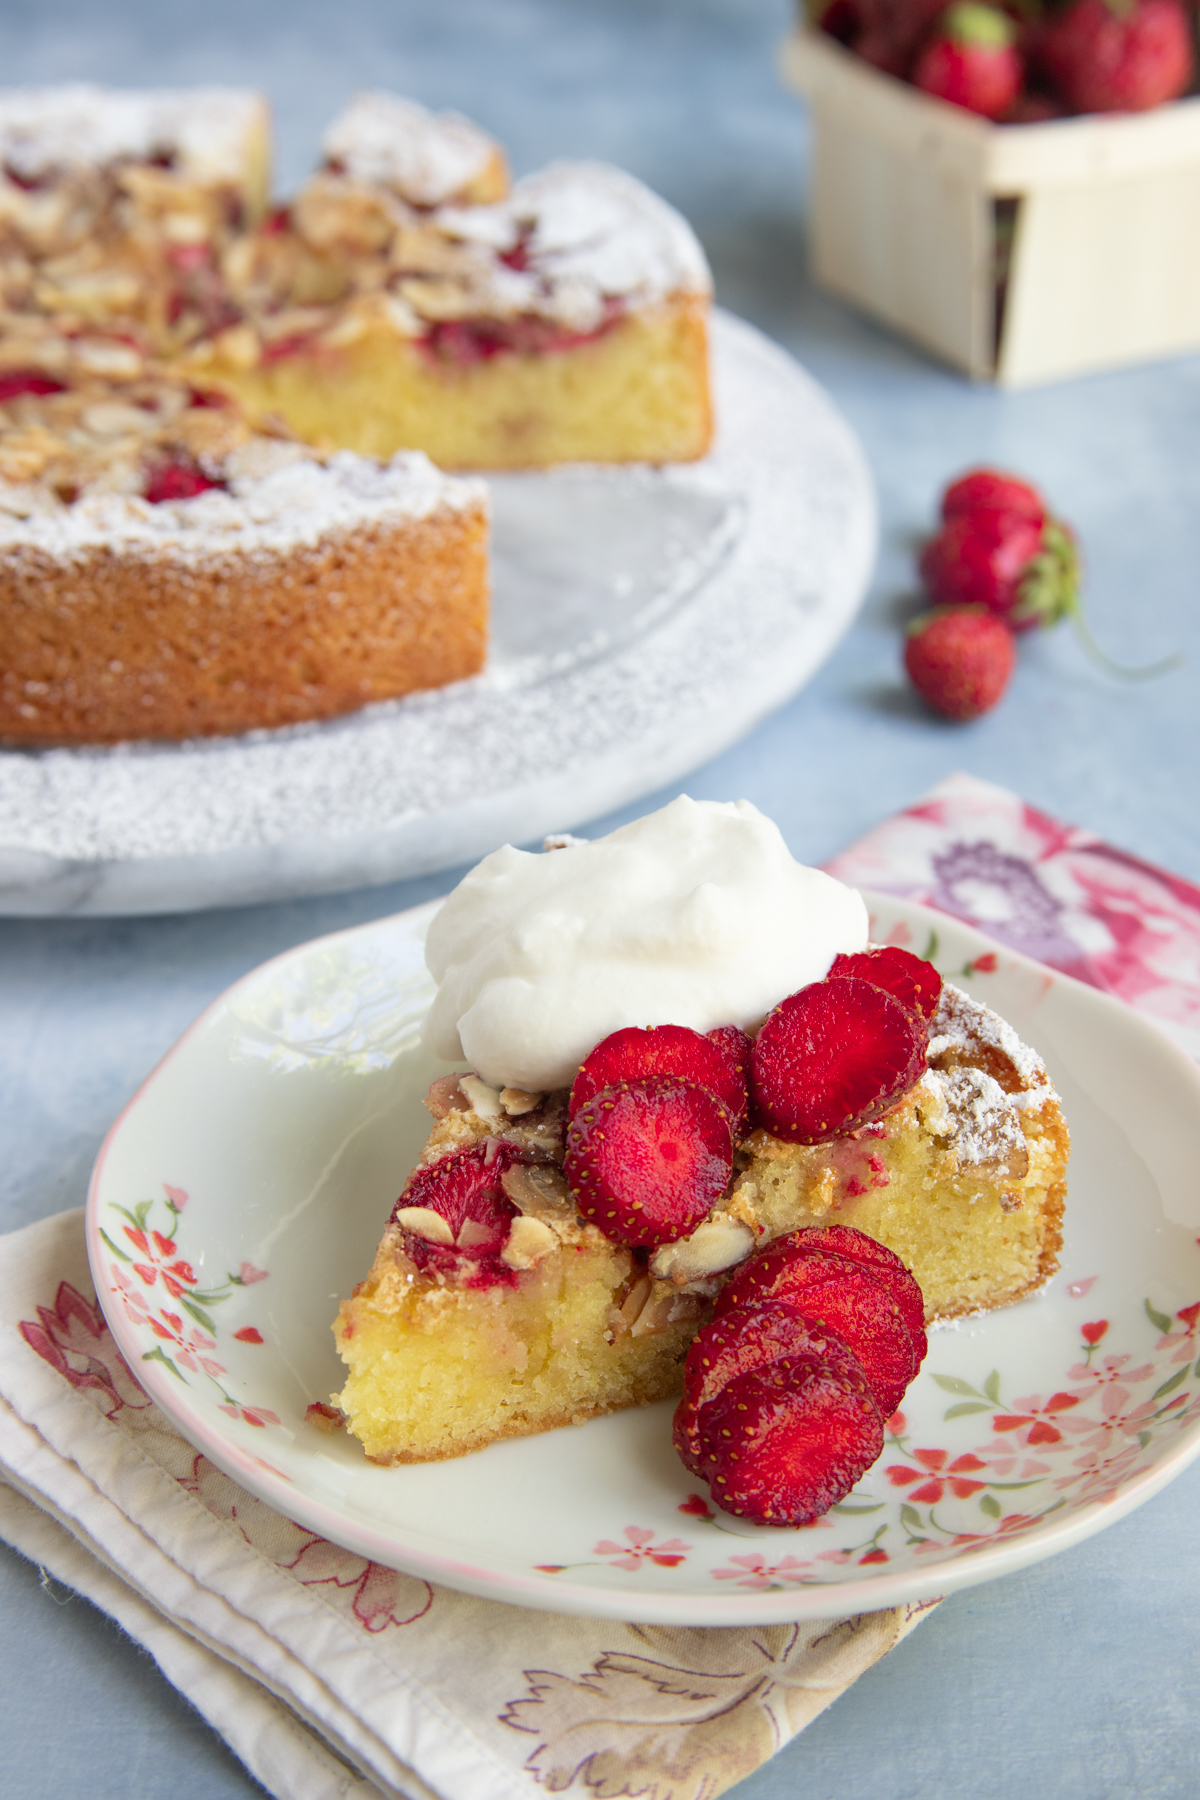 Strawberry Almond Cake slice on dessert plate with whole cake and fresh strawberries  in the background